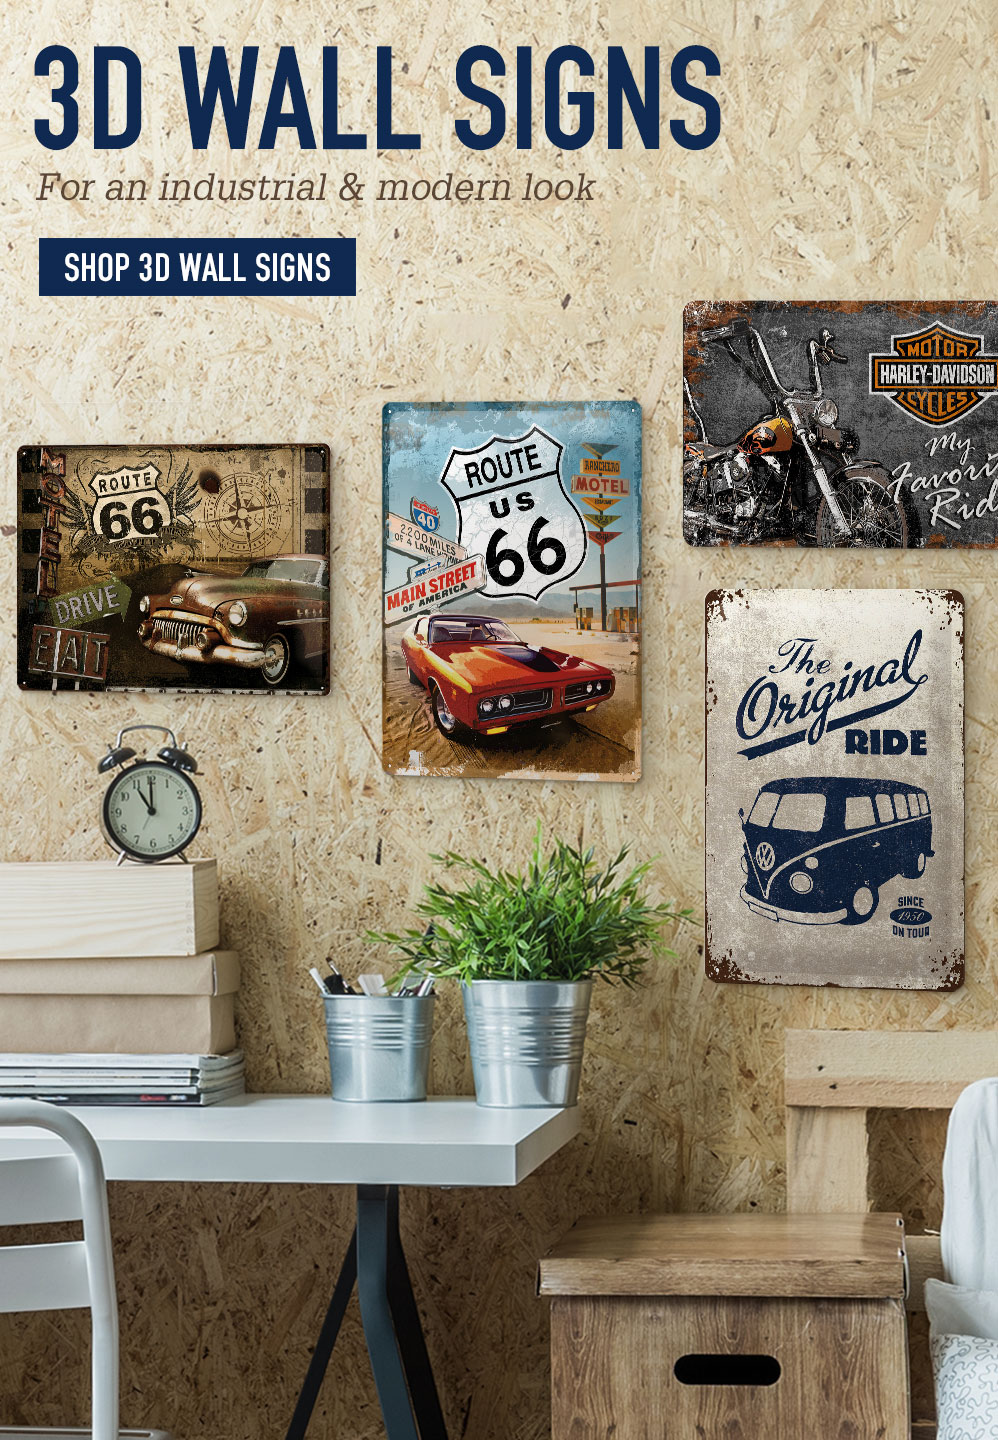 3D Wall Signs. For an industrial & modern look. Shop 3D Wall Signs